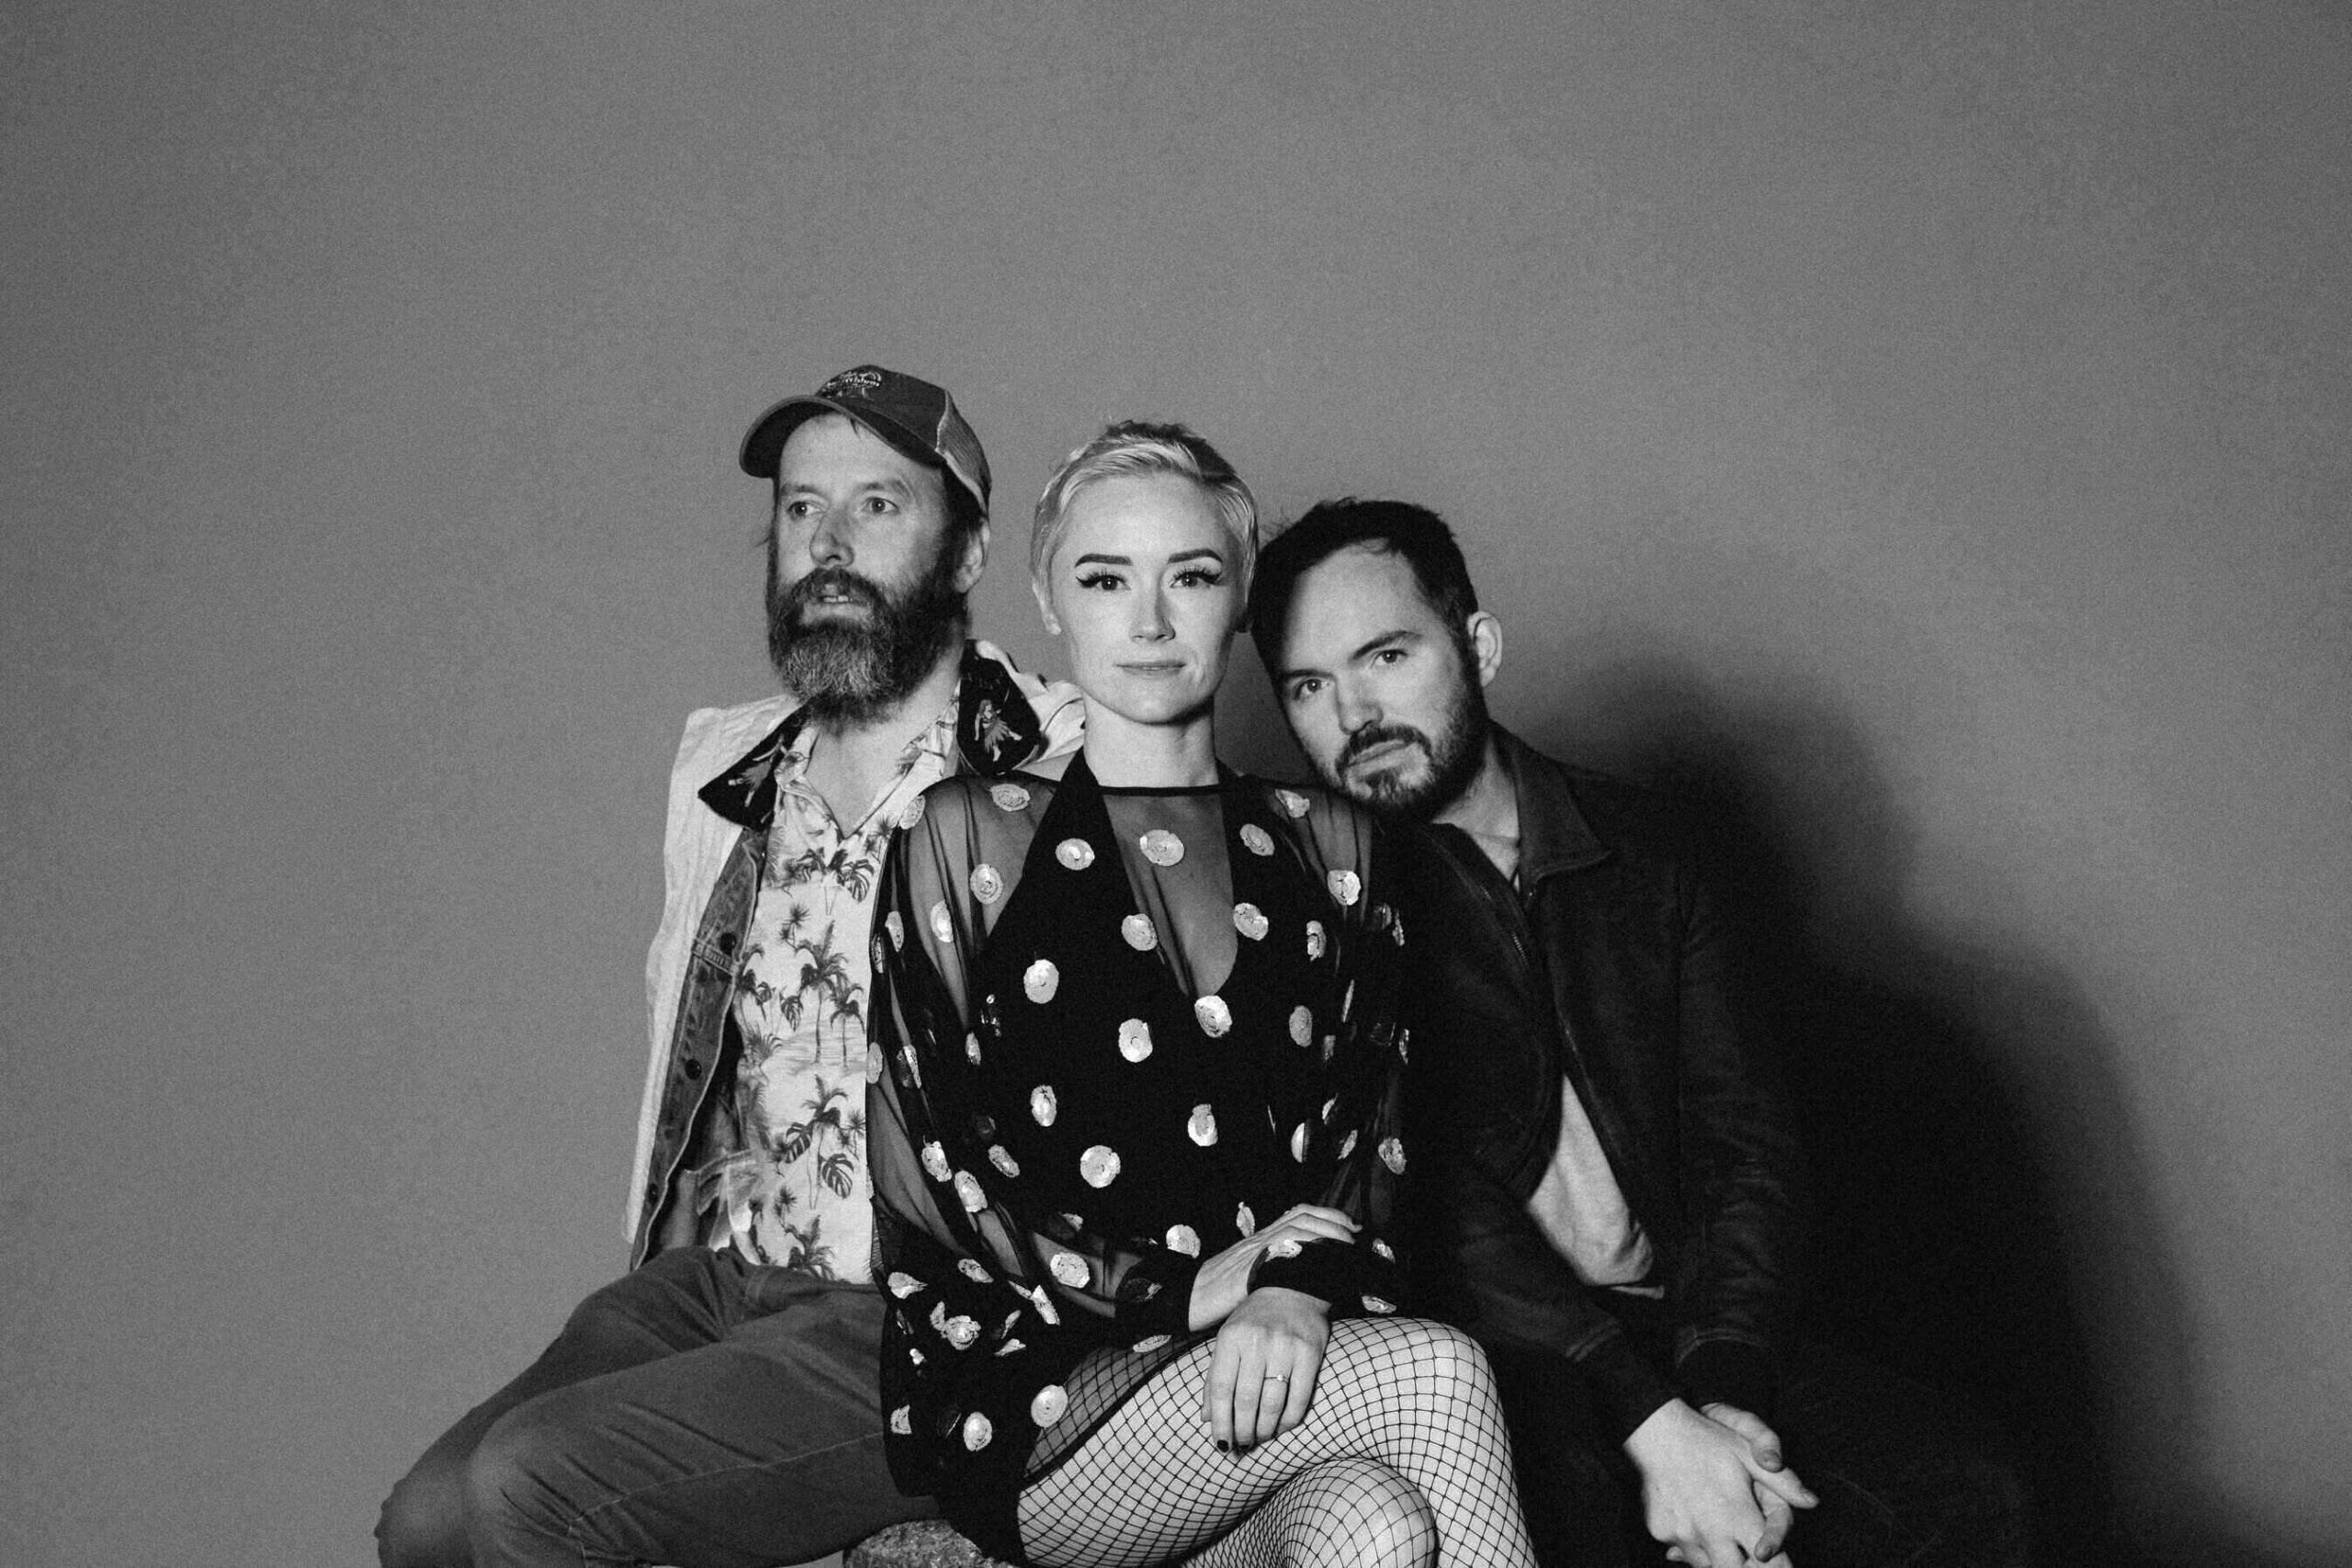 HamsandwicH are one of Ireland's most enthralling live acts in recent times